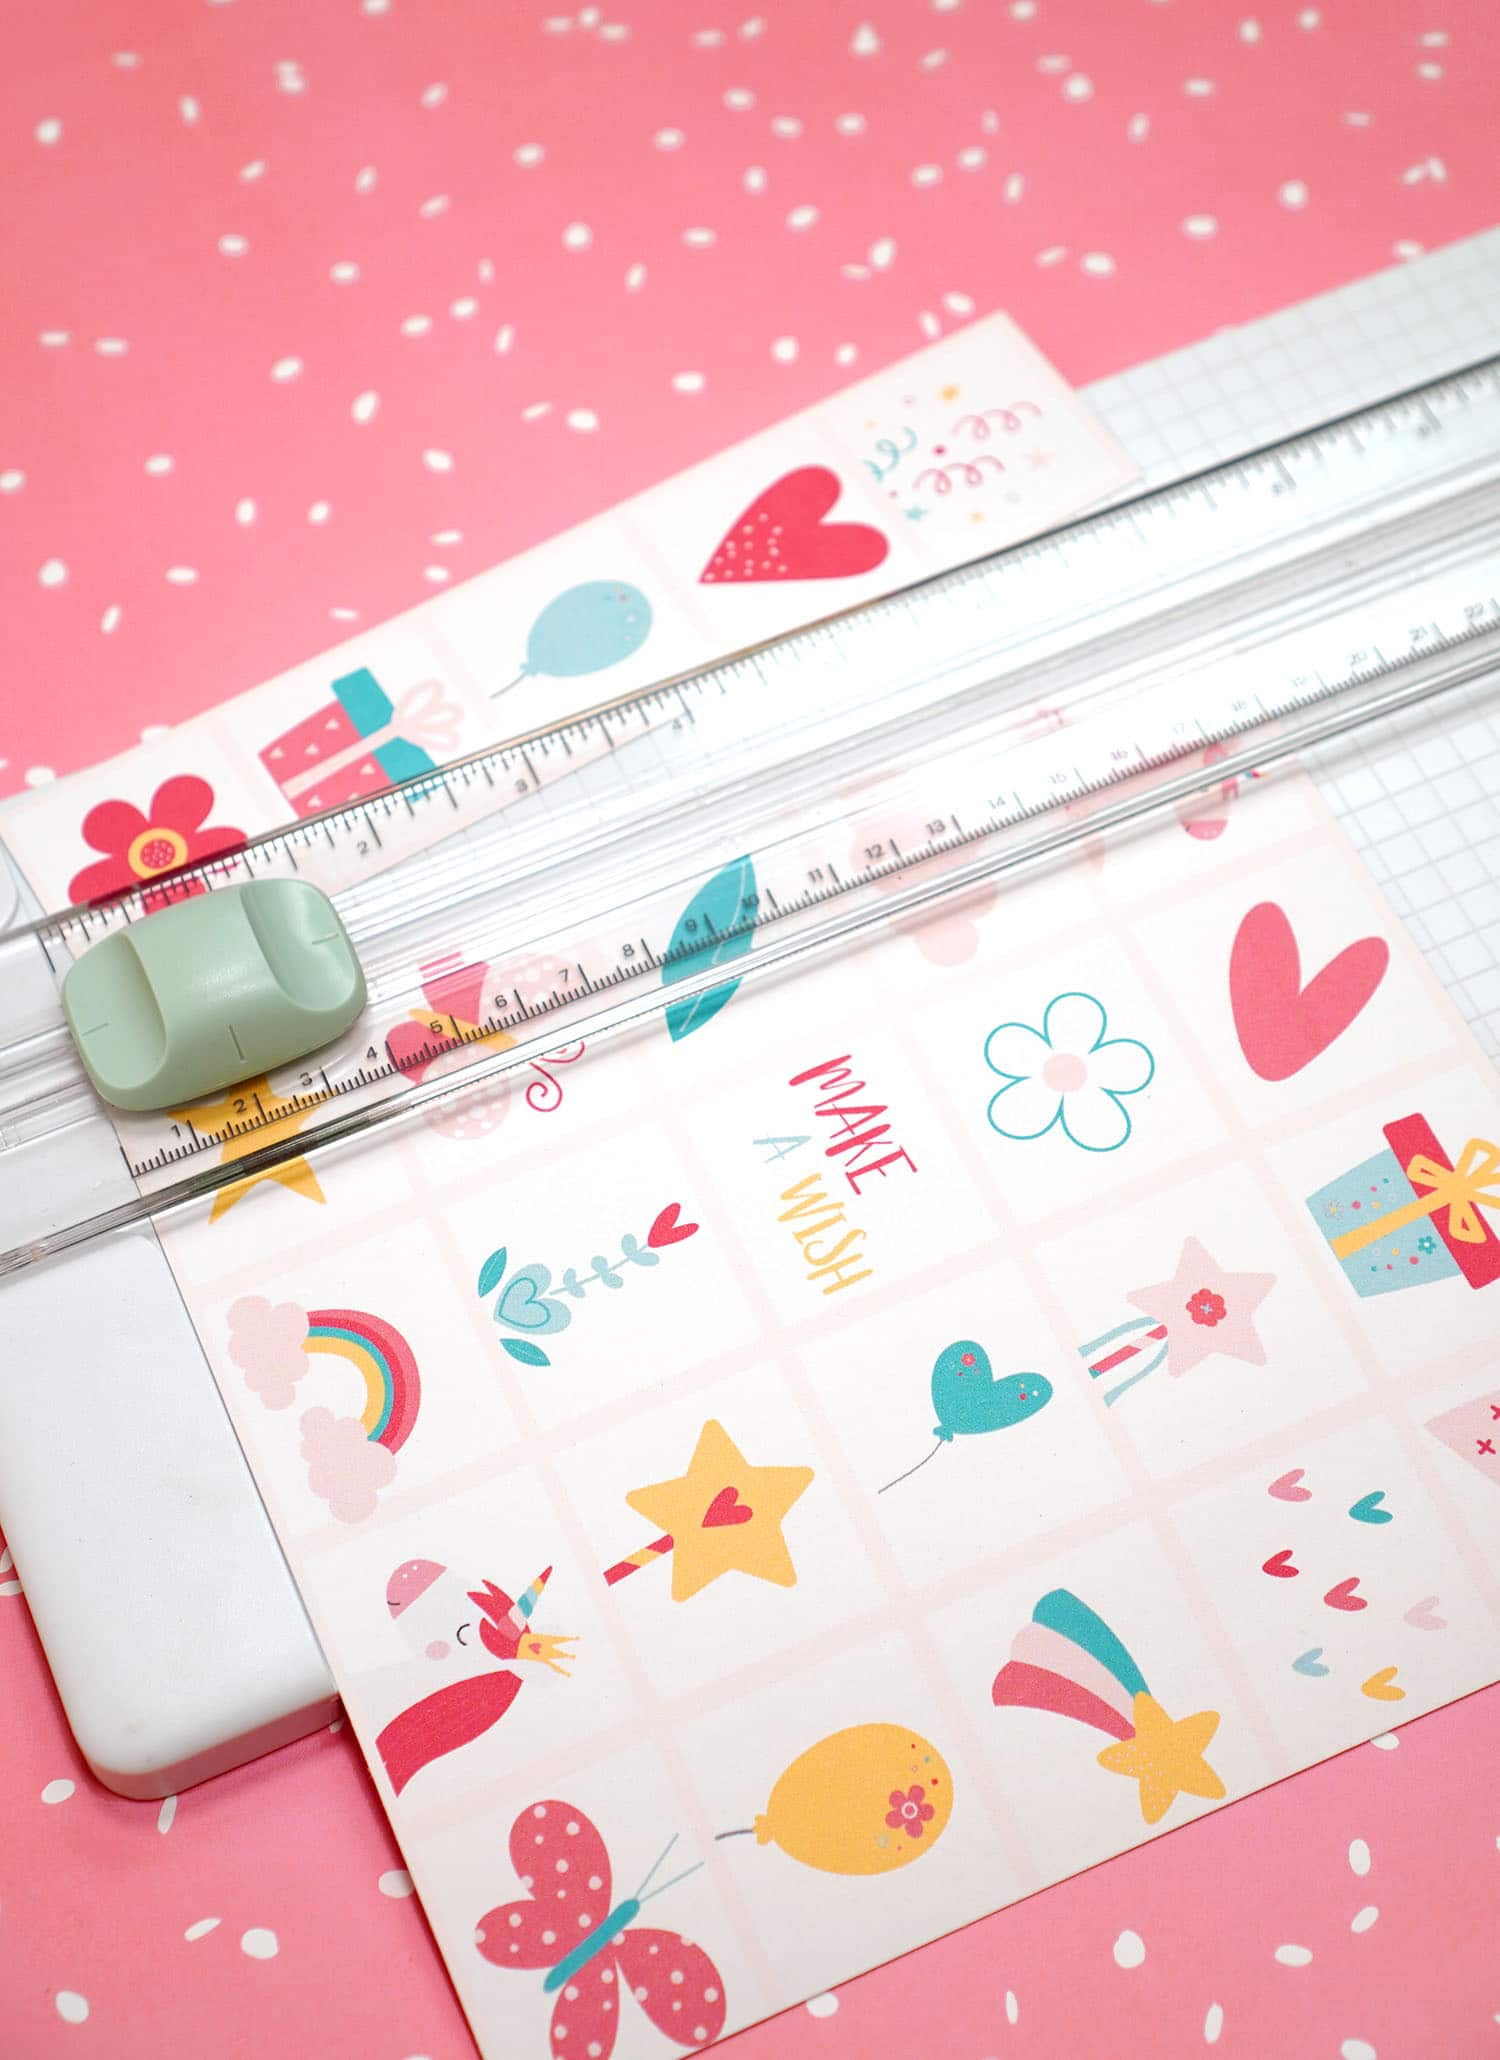 Paper trimmer cutting a sheet of Unicorn Bingo Game calling cards on a pink background